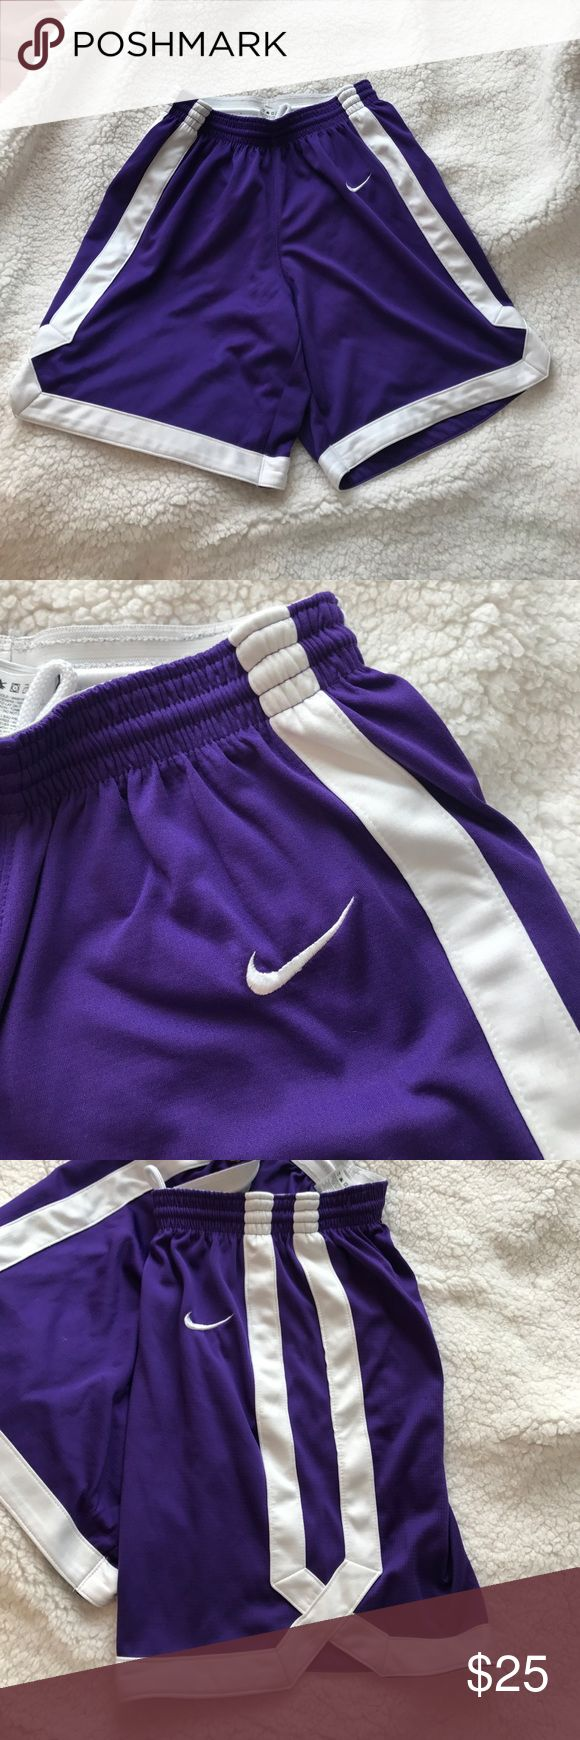 Nike Dri-Fit shorts Worn once. Nike shorts for work rig out, basketball, etc. Nike Shorts